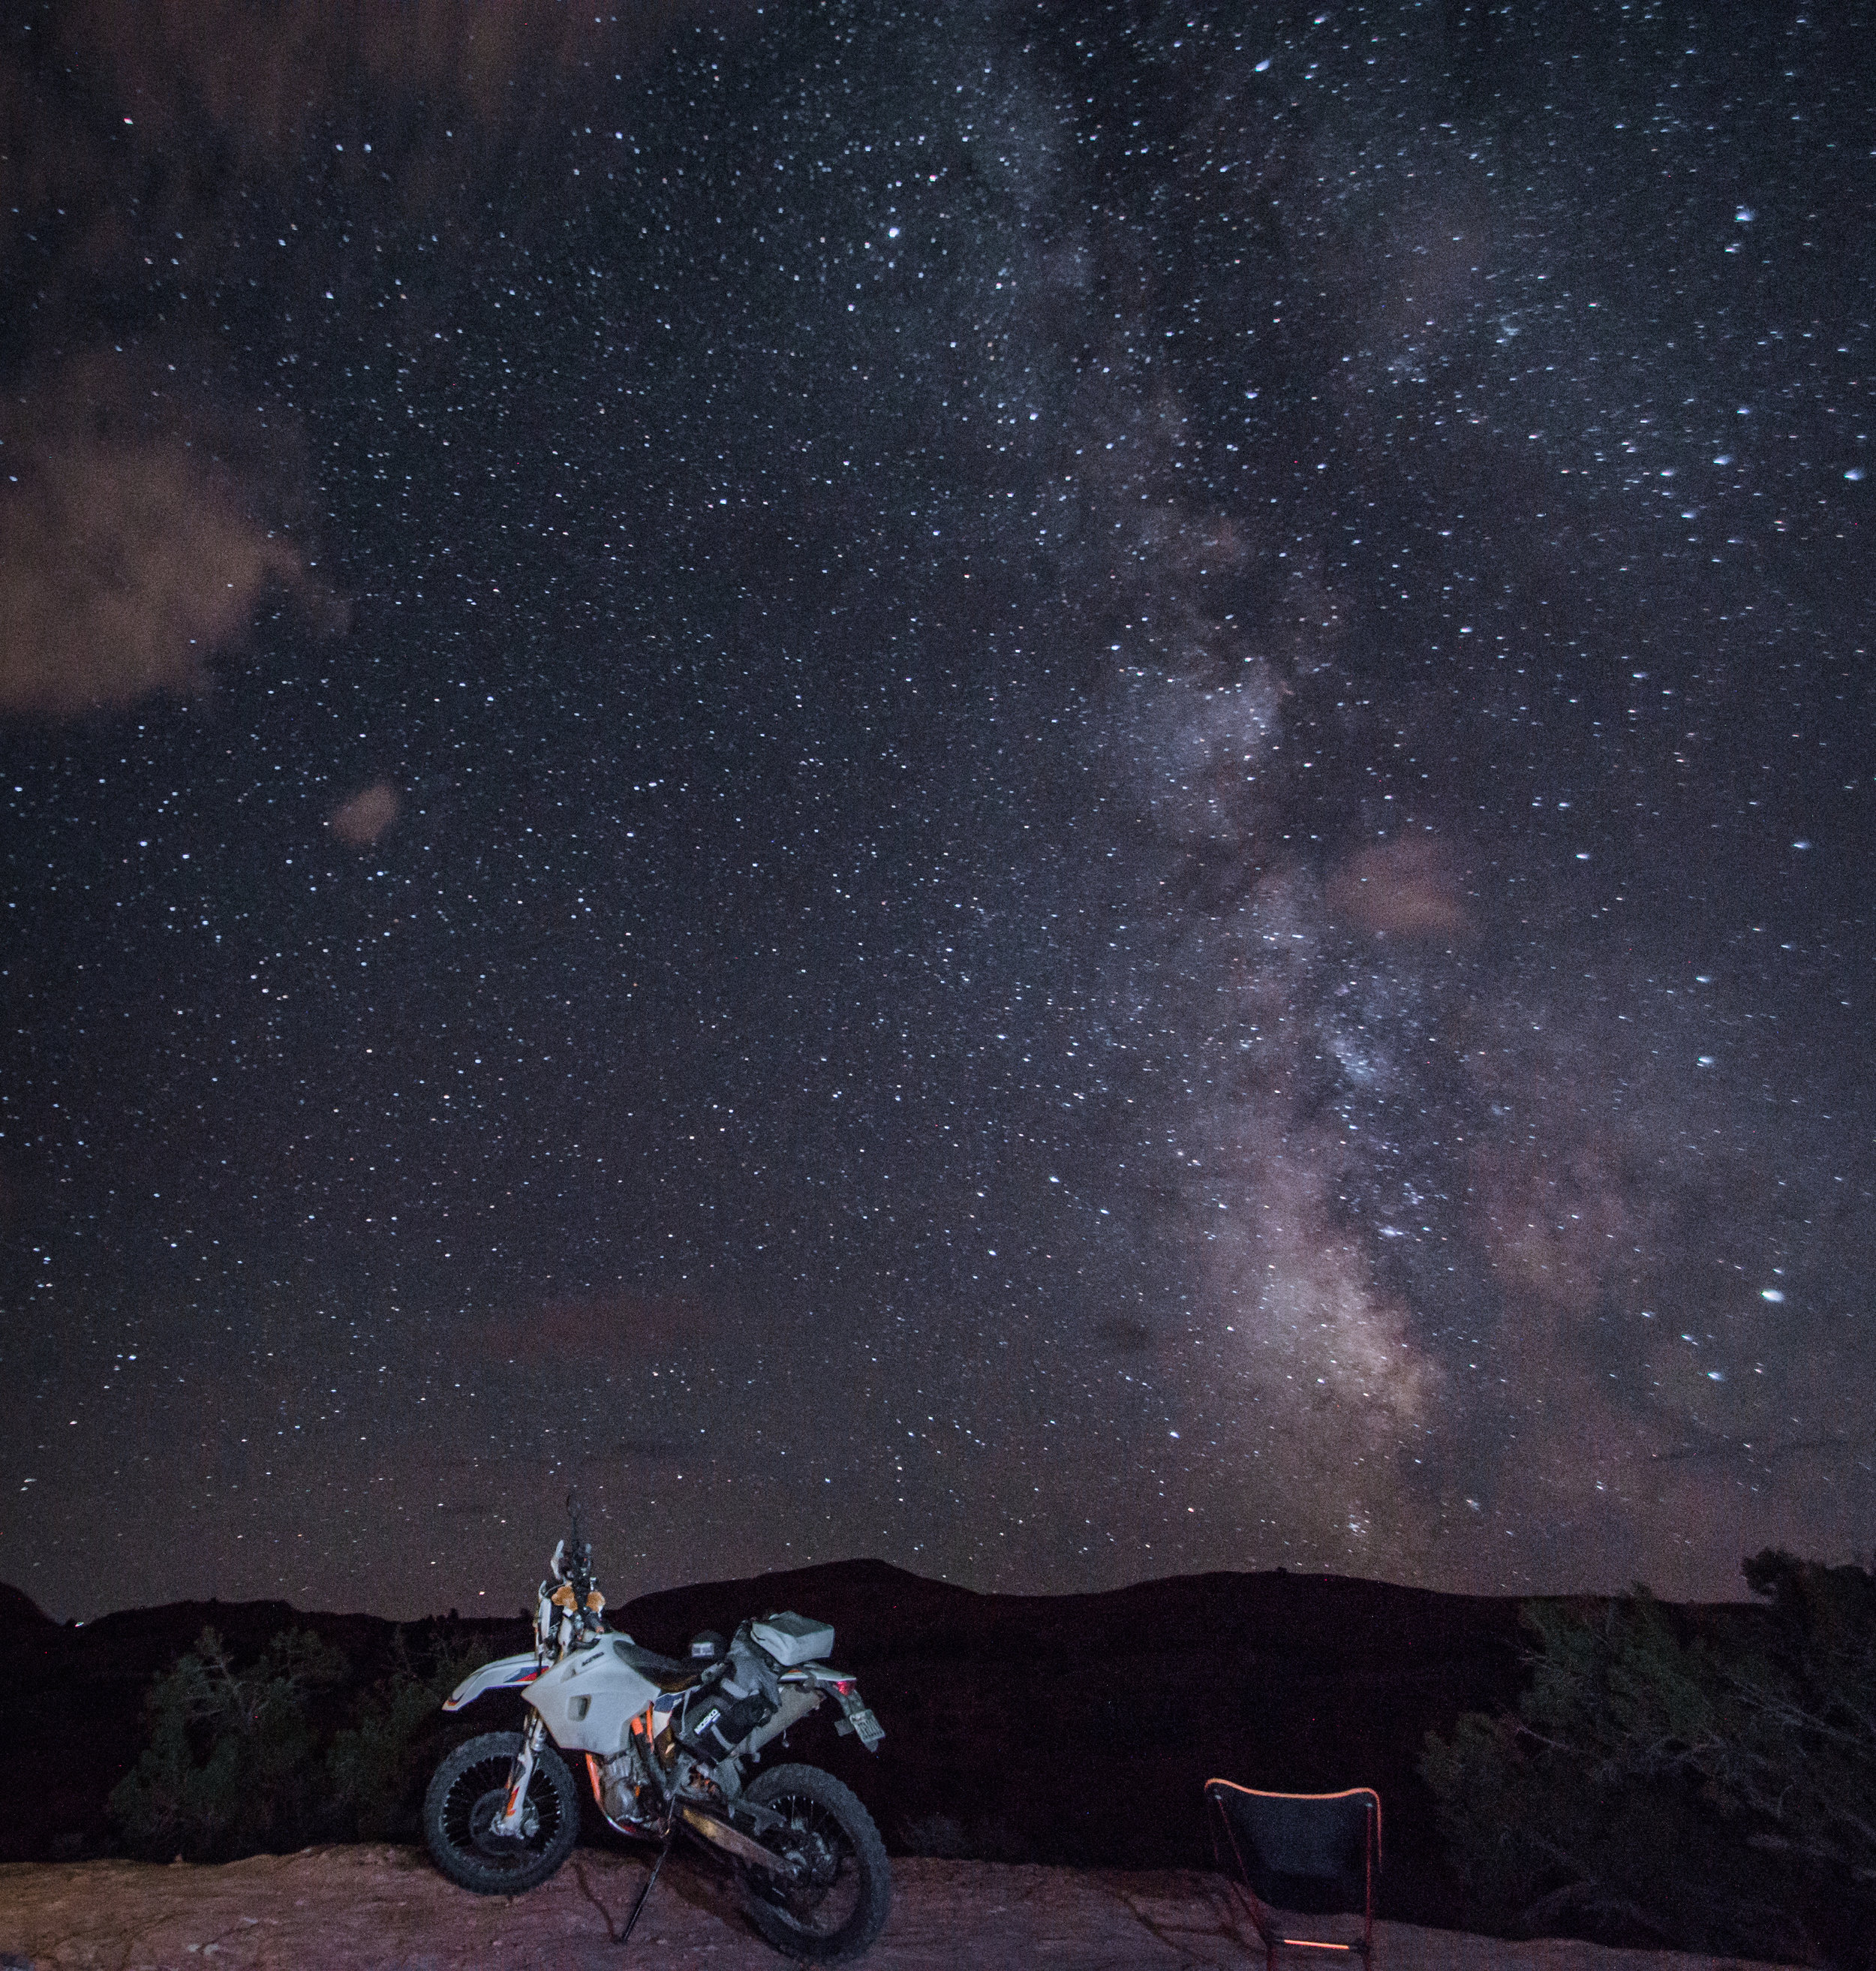 Moab night sky. Never forget your chair.